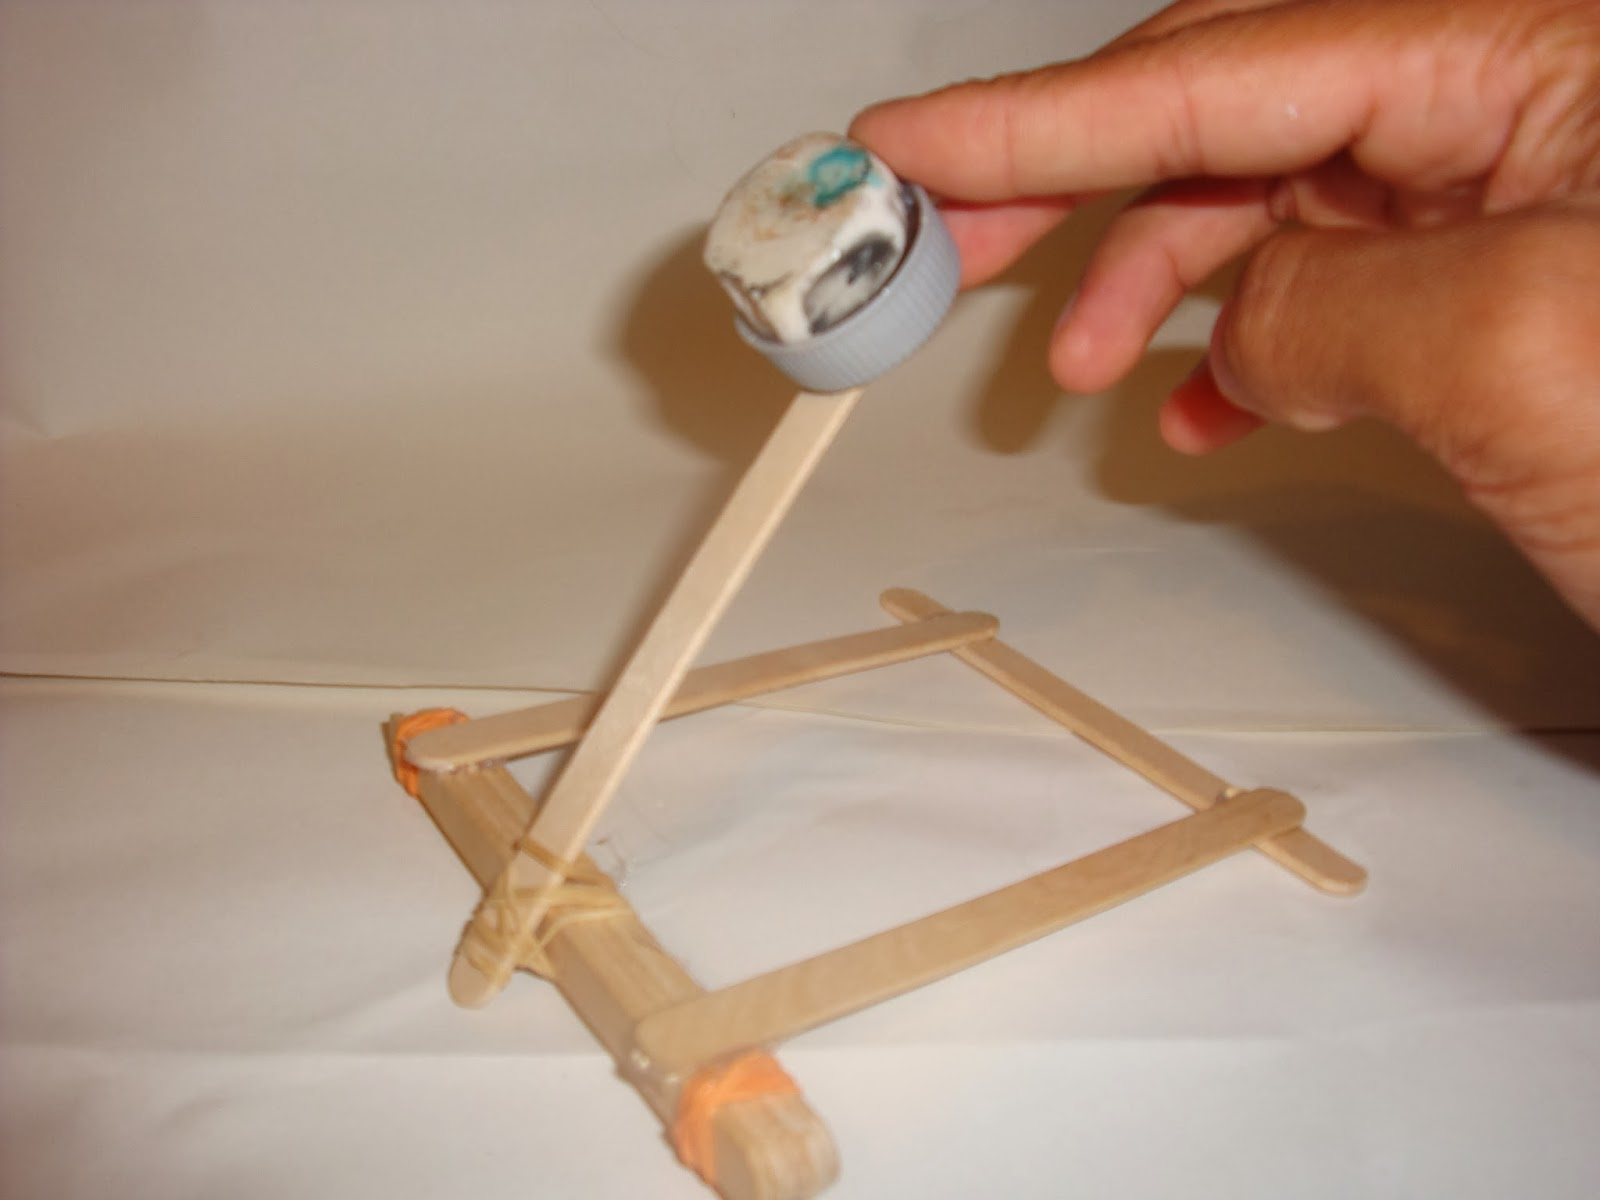 Projects and crafts for boys: Making a catapult  How To Build A Catapult With Popsicle Sticks